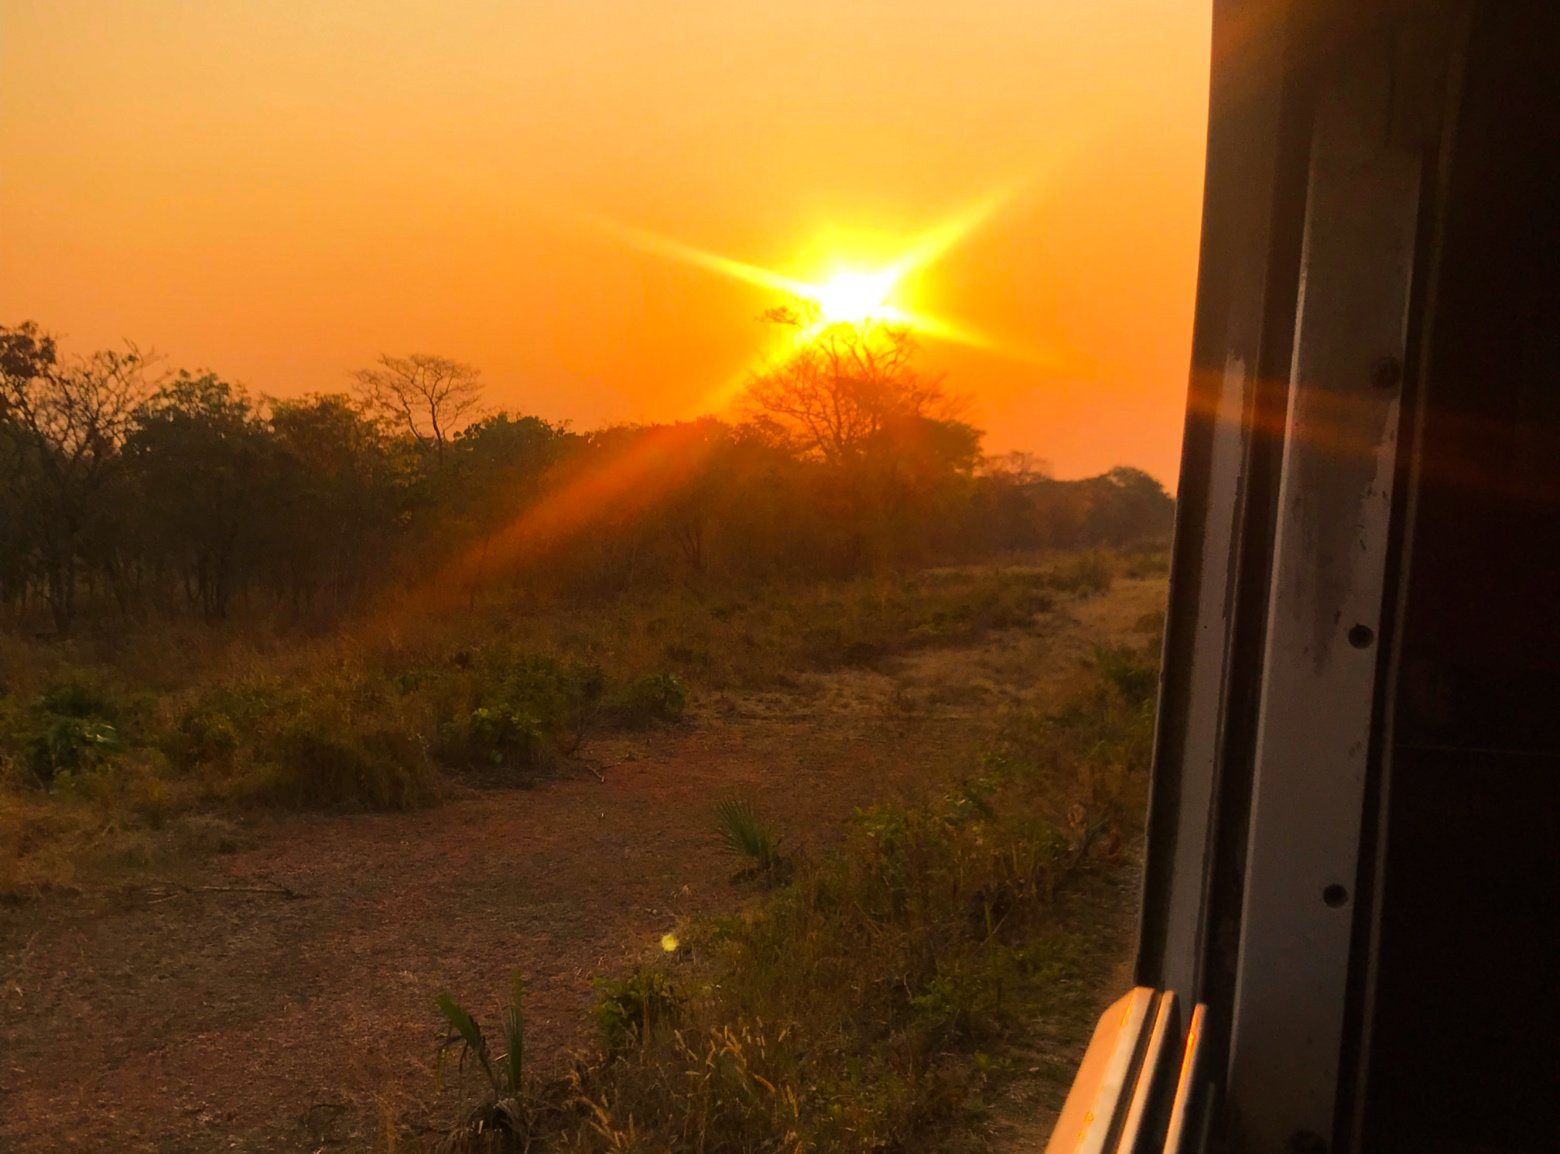 Sunset from the railway, Central Line train, Kigoma to Dar es Salaam, Tanzania - Experiencing the Globe